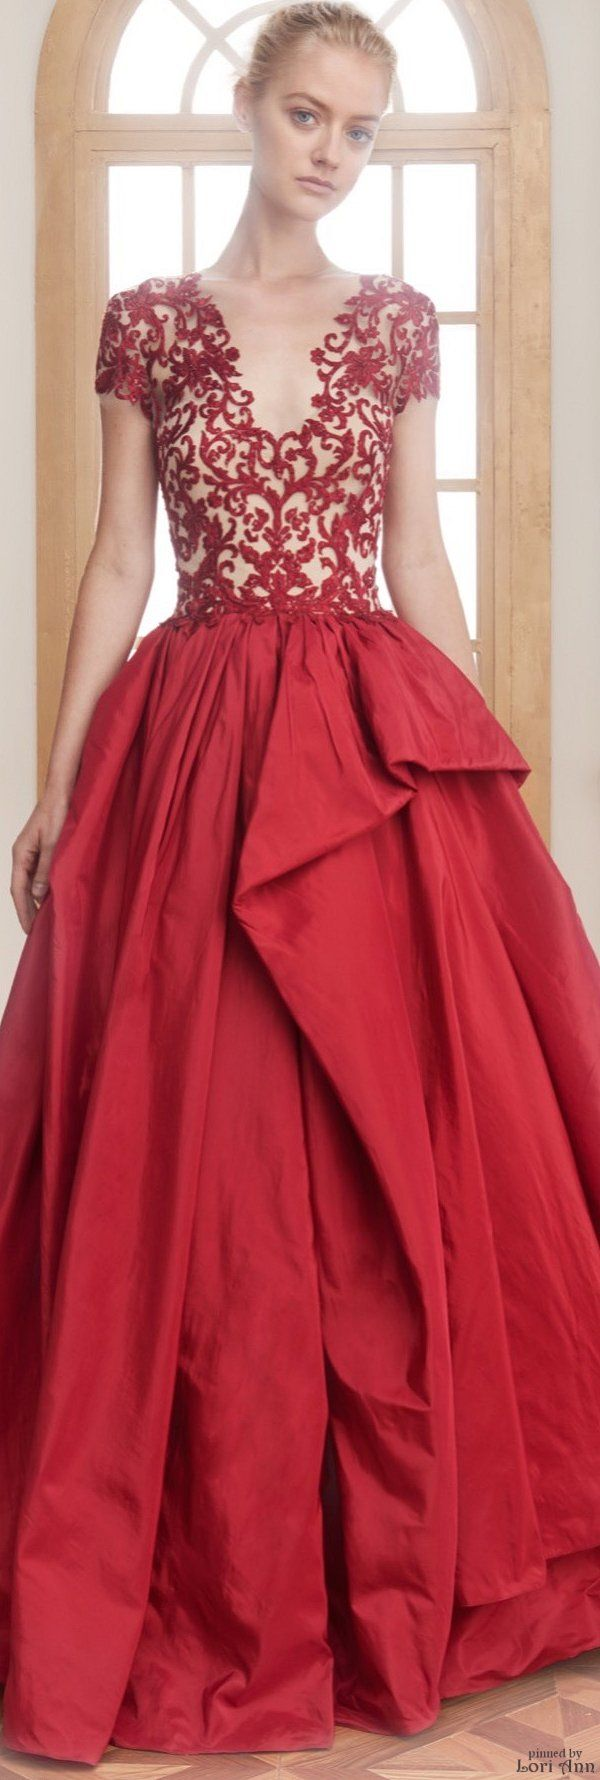 321 best Red images on Pinterest | Evening gowns, Evening dresses ...